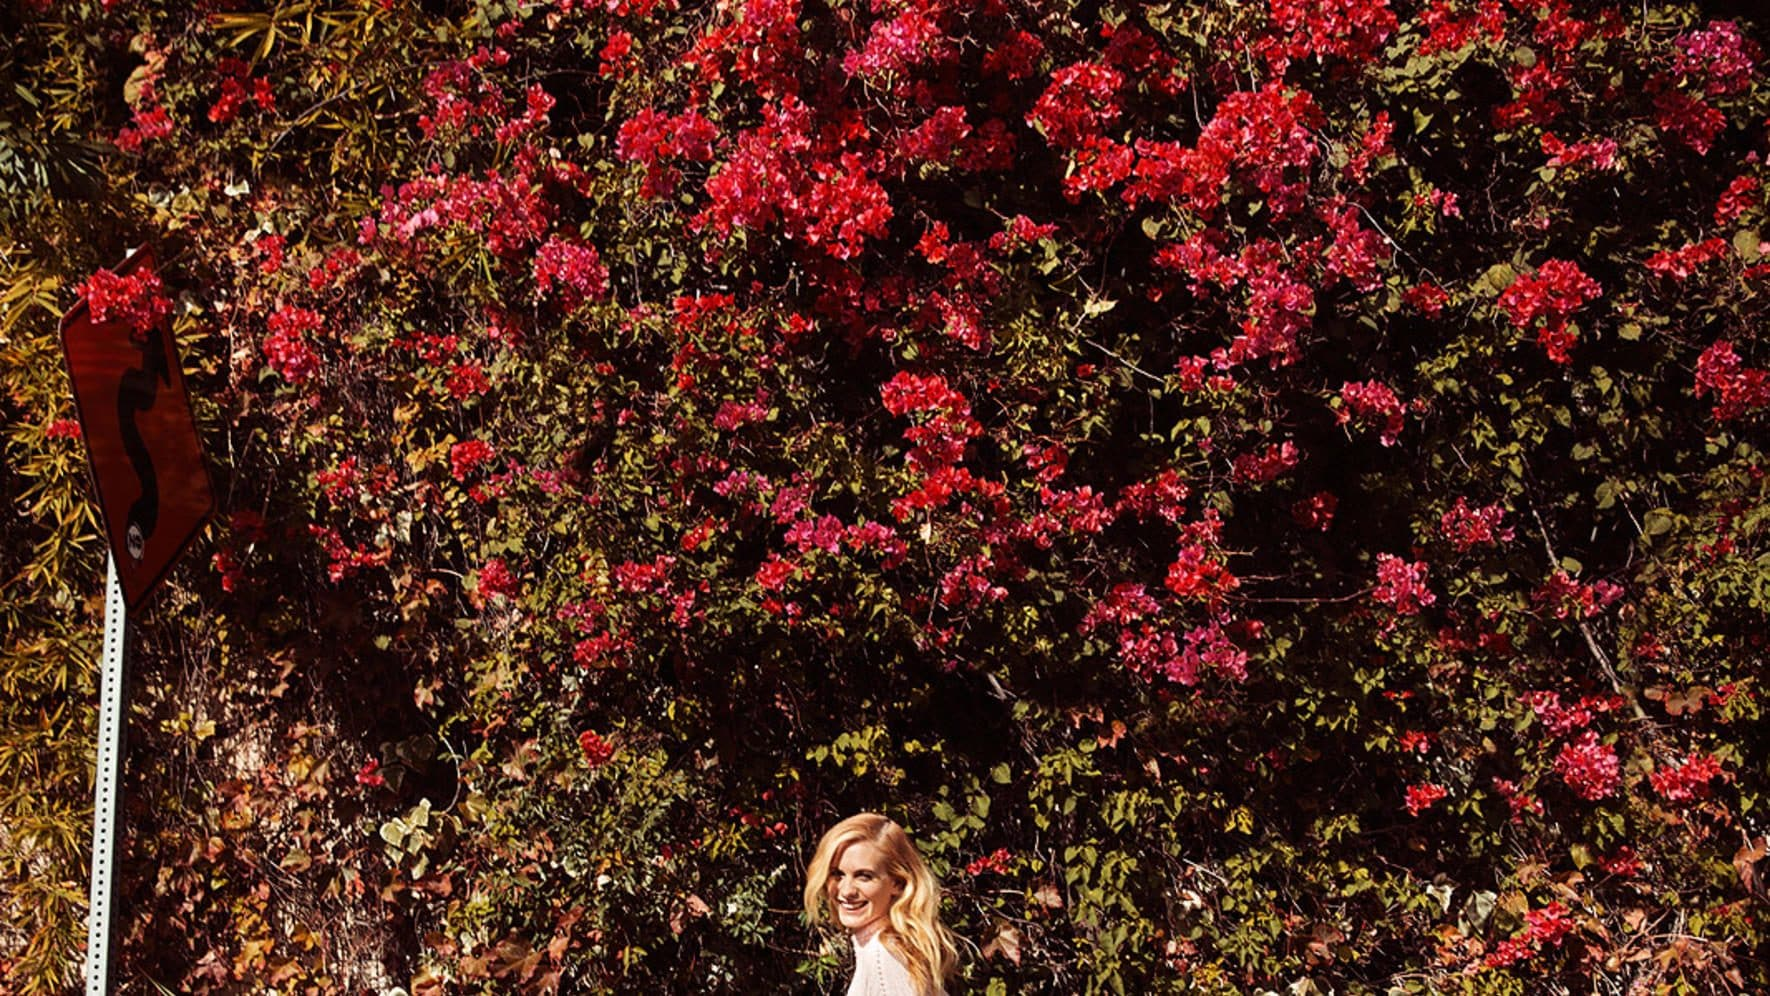 stylebop.com red carpet capsule collection poppy delevingne